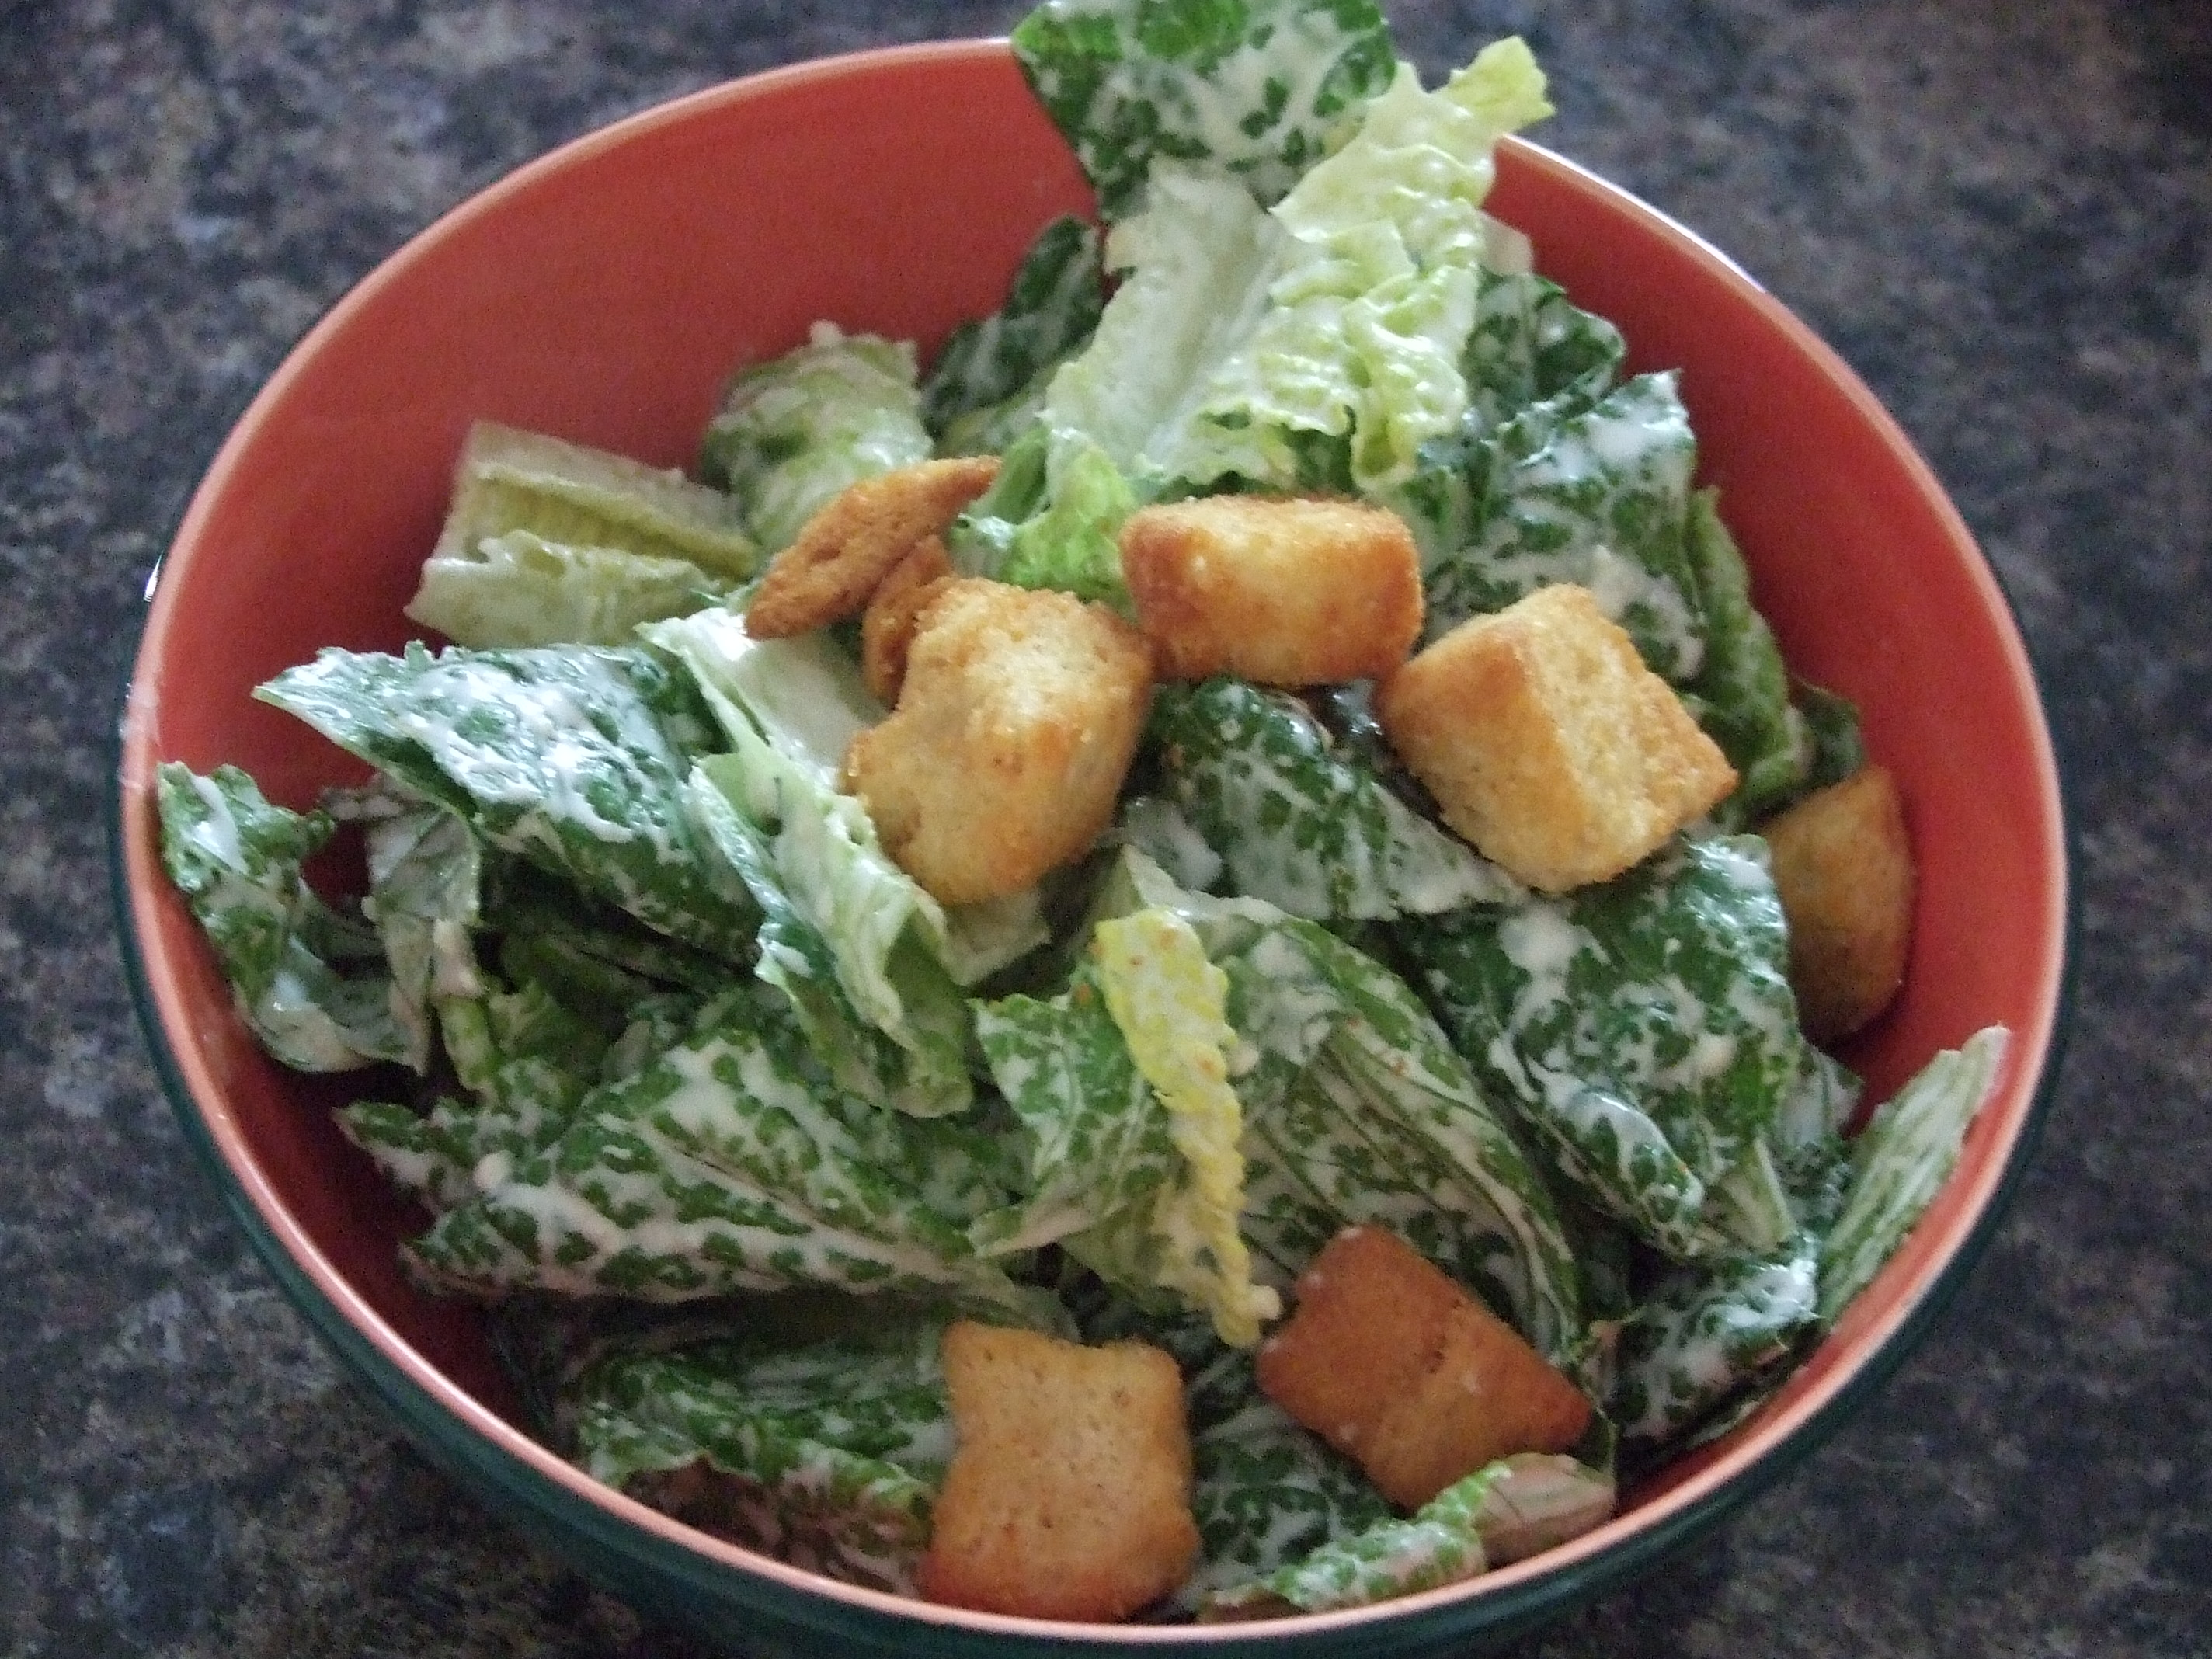 Carrabba S House Salad Dressing Creamy Parmesan The Peppertree